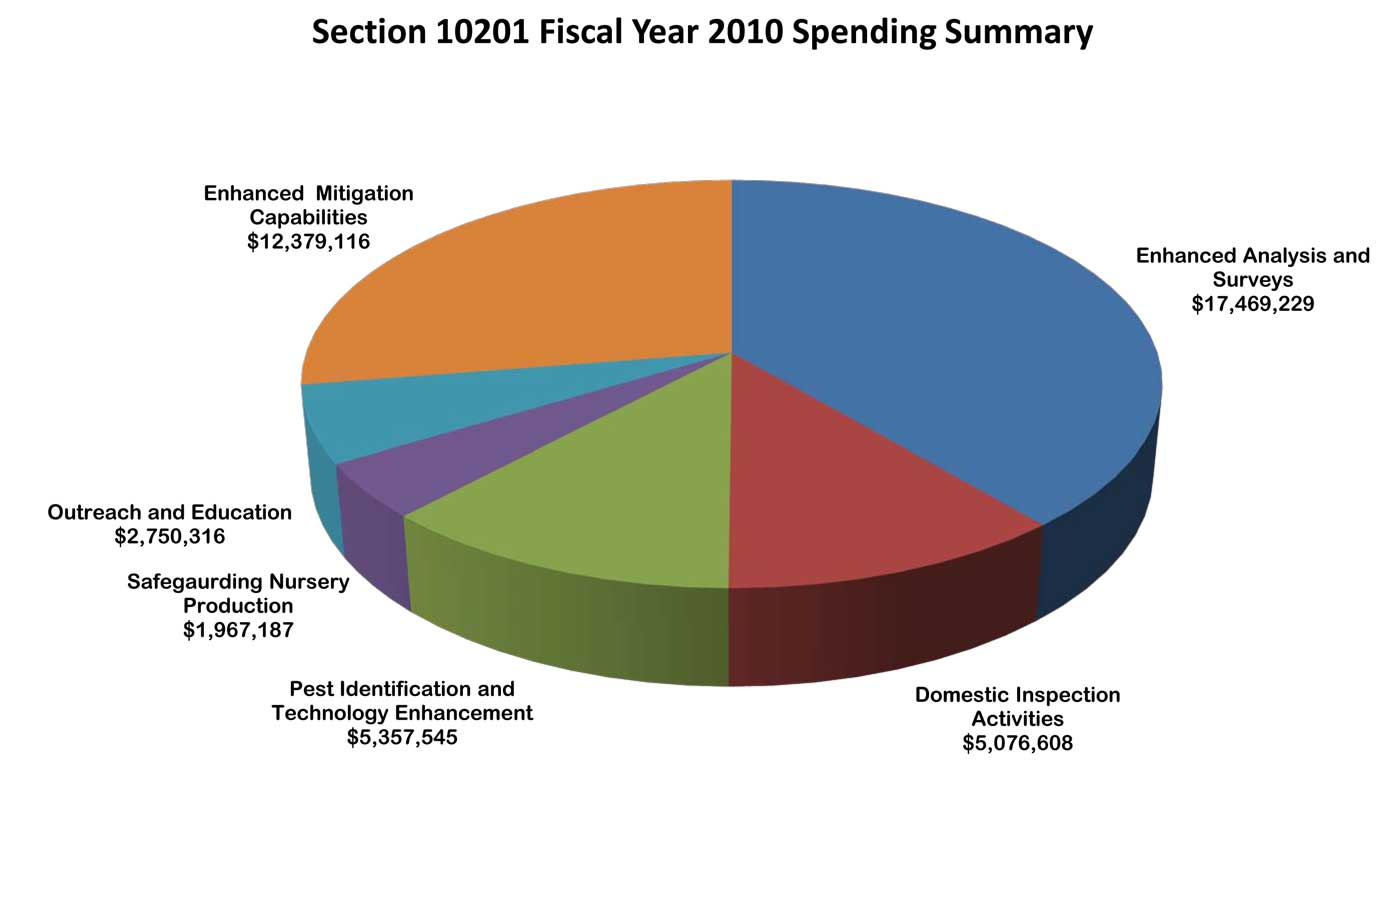 Usda aphis status of the fy10 farm bill implementation activities spending pie chart select for a larger image geenschuldenfo Images